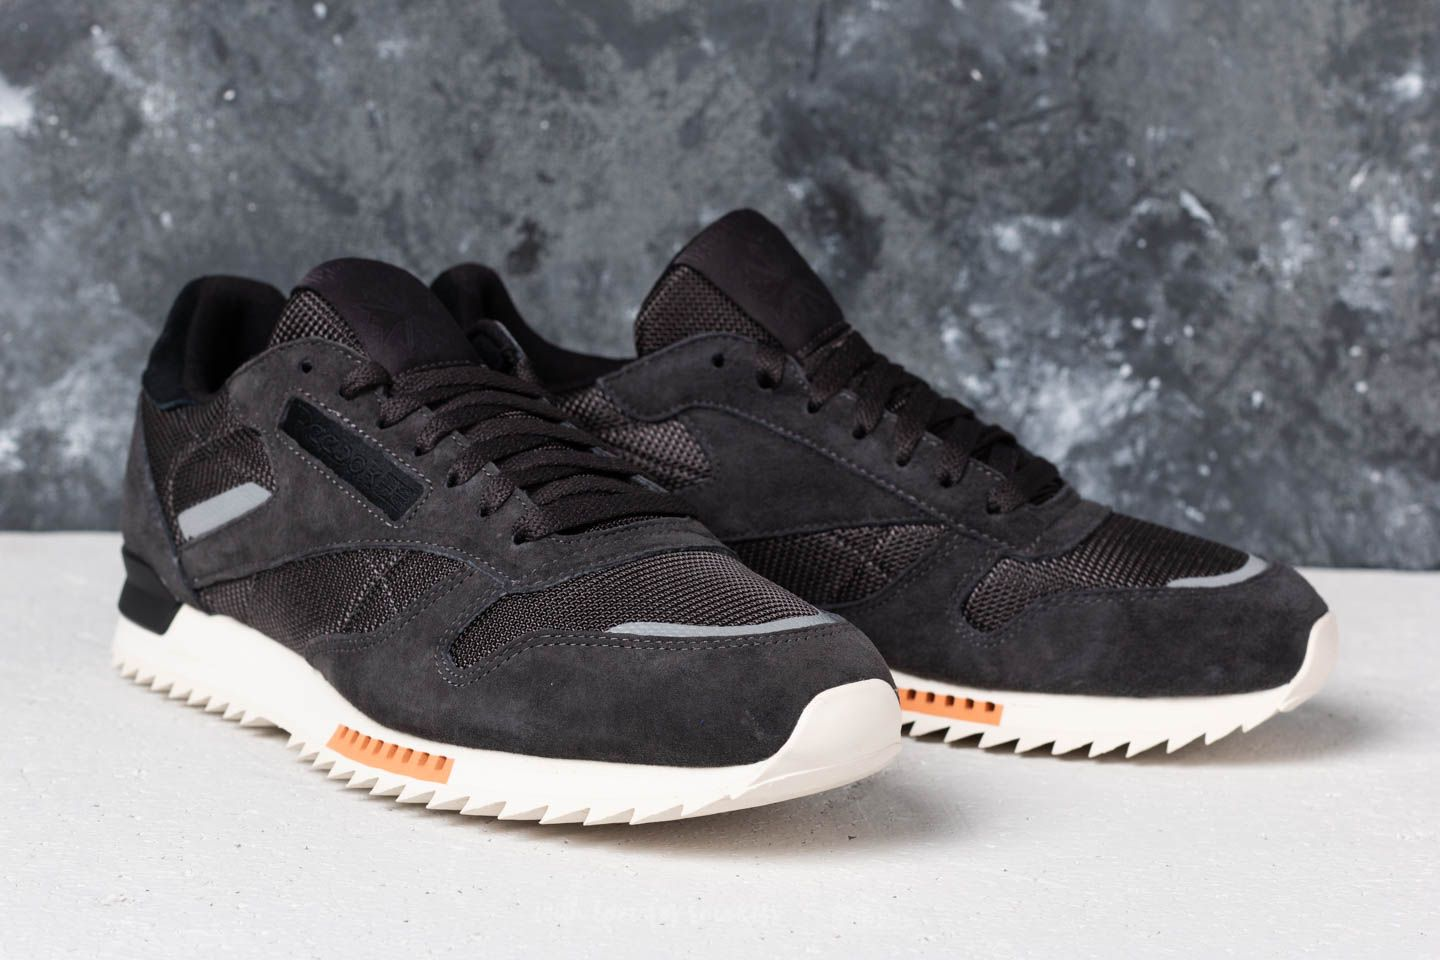 Reebok CL Leather Ripple SN Coal Powder Gry Classic White | Footshop